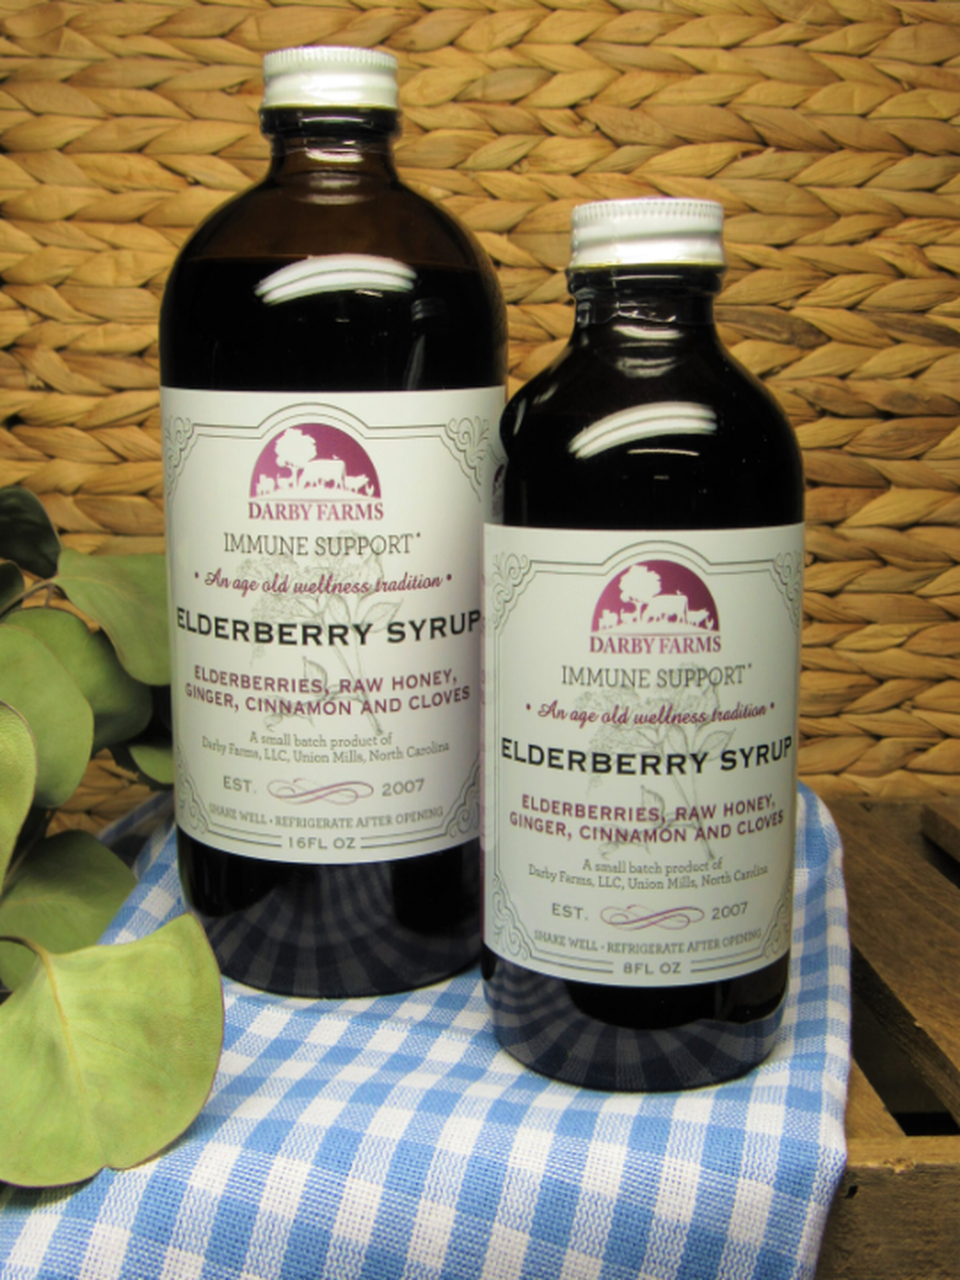 Elderberry Syrup from Darby Farms